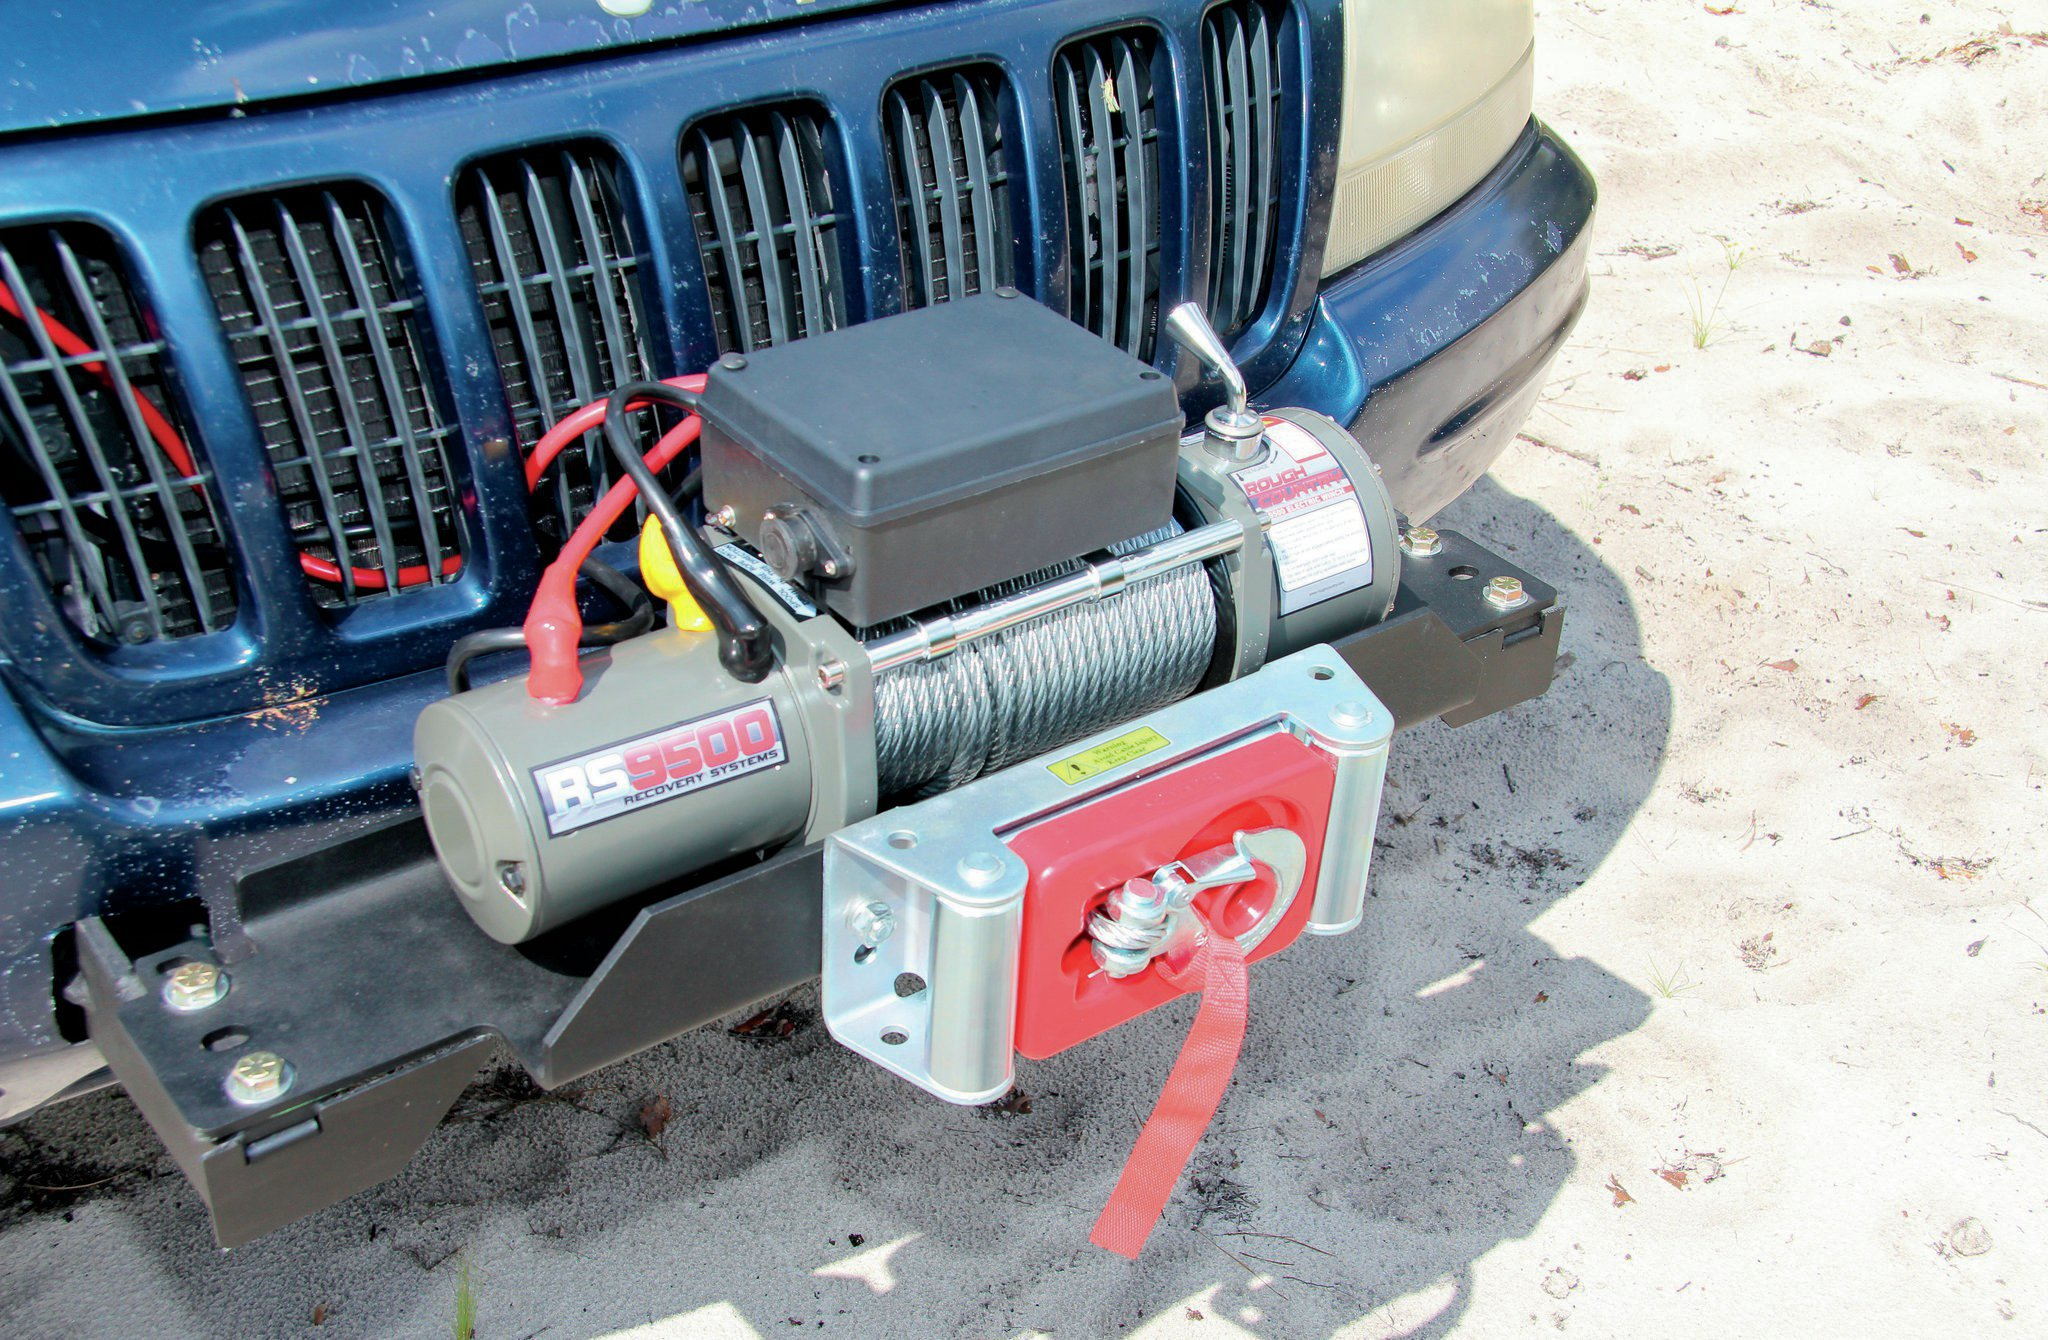 Our budget-friendly recovery tool of choice was a Rough Country 9,500-pound winch. We've used the RC9500 in the past with solid results. The only complaint we've ever had is that the winch is a little slower than we would like, but it always gets the job done. We went with steel cable for sheer strength, durability, and the fact that it was a little less expensive.